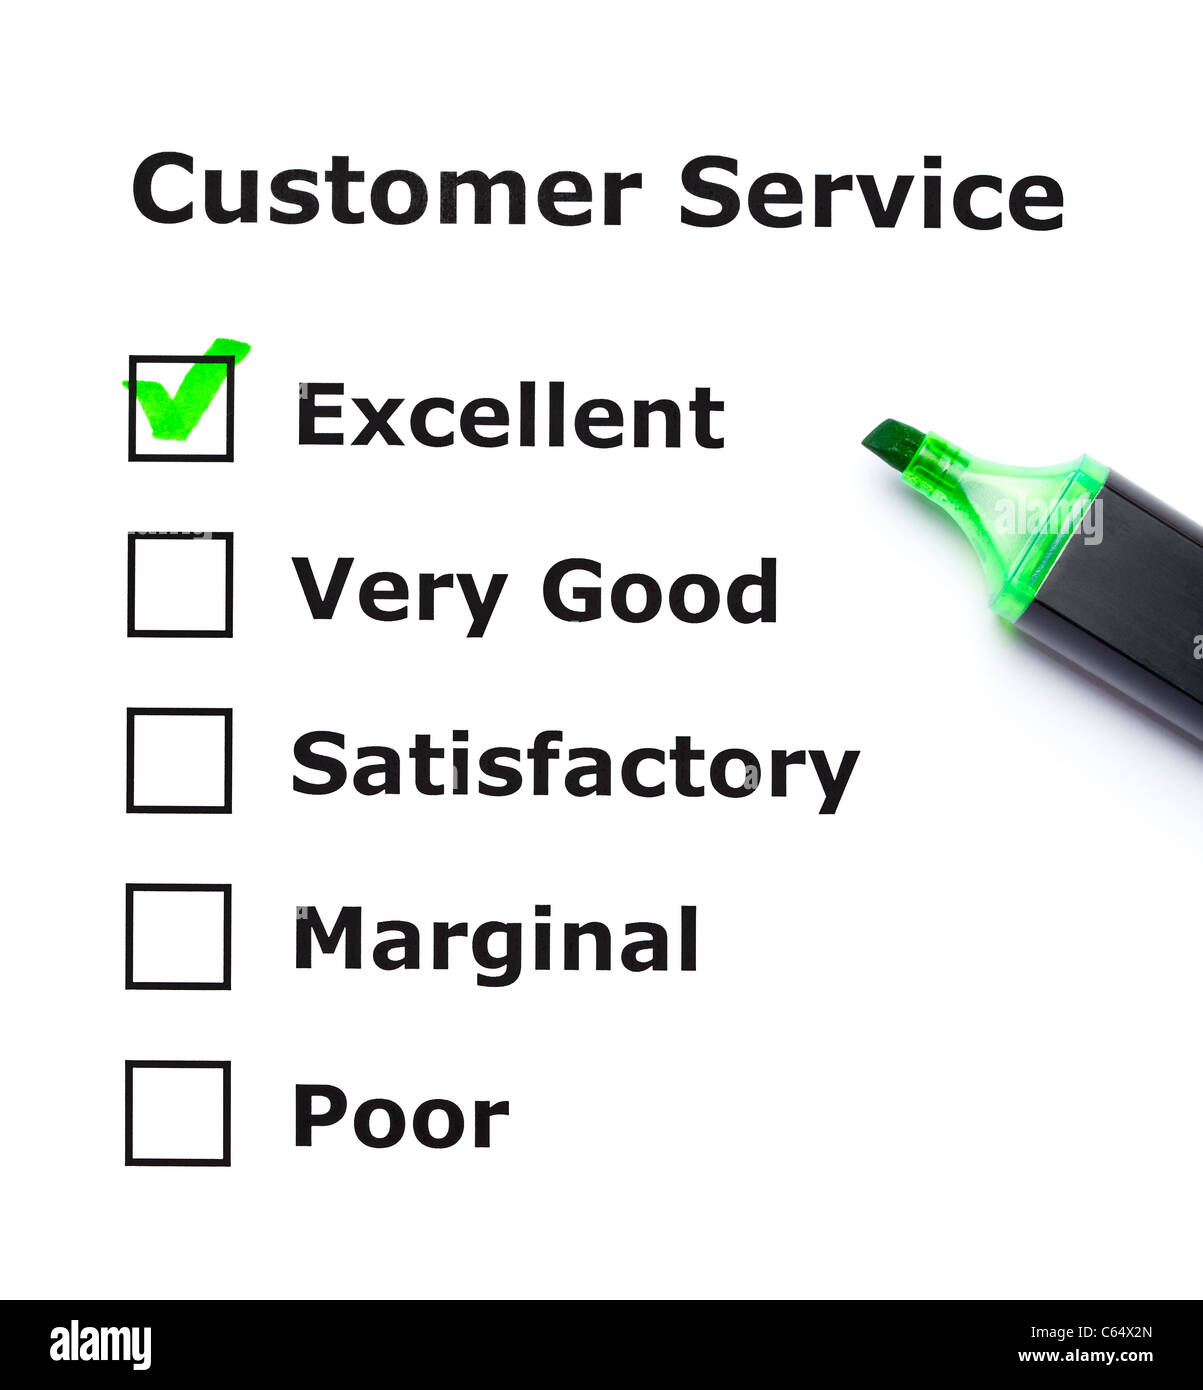 Customer service evaluation form with green tick on Excellent with felt tip pen. - Stock Image